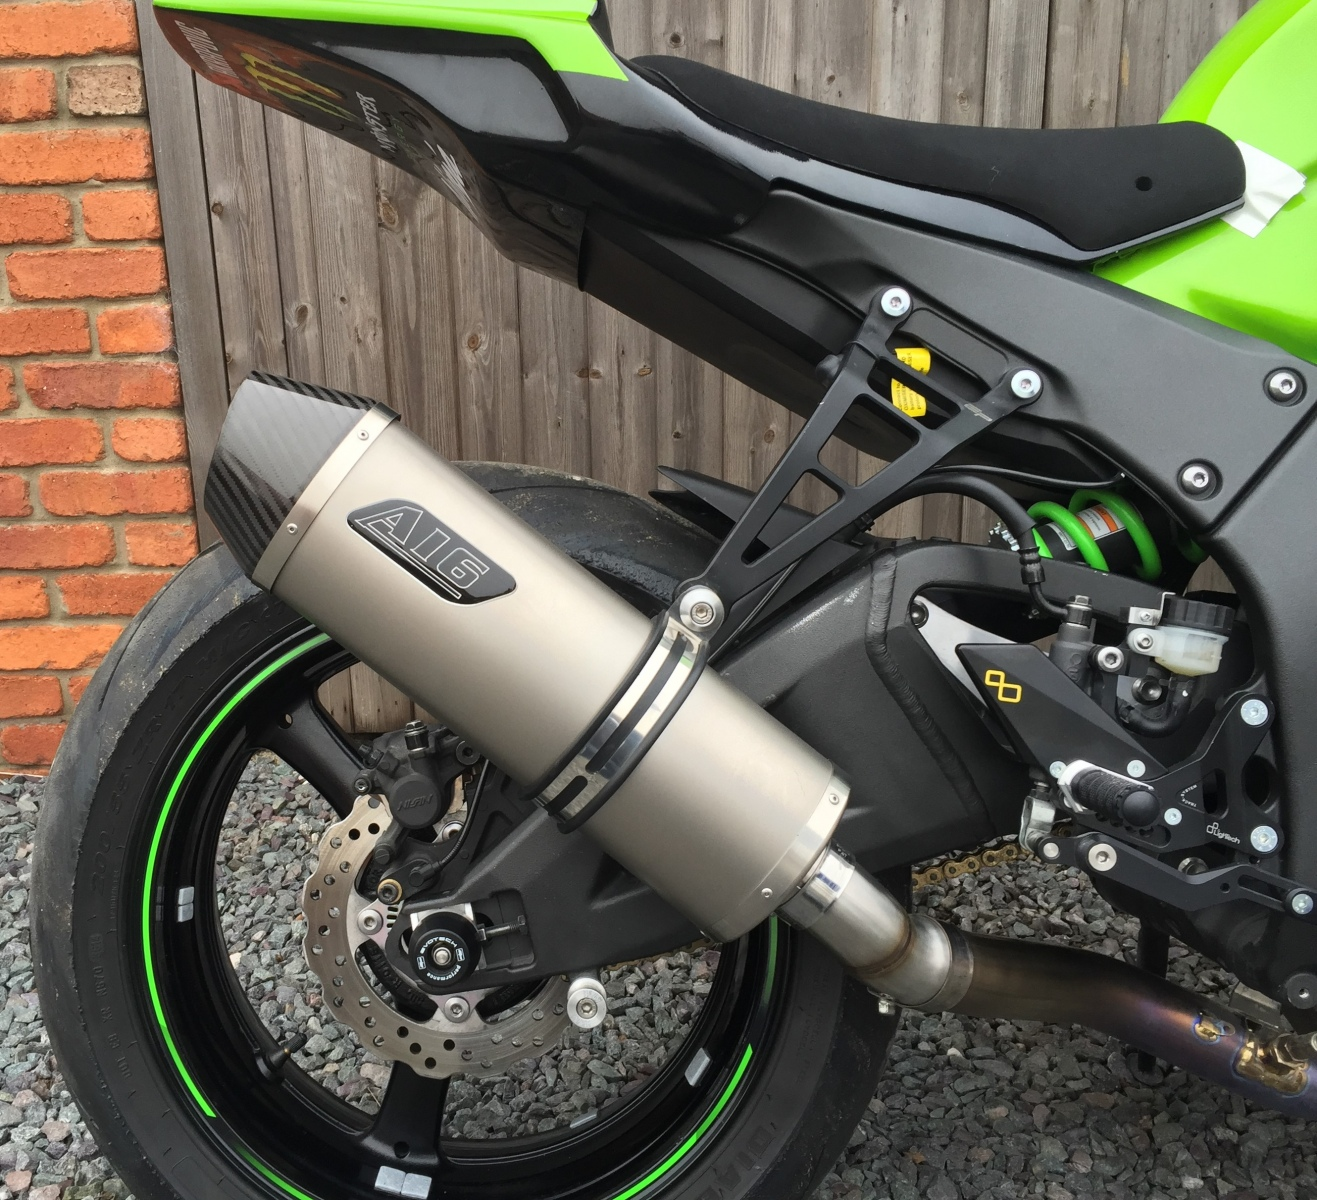 """Kawasaki ZX10R 2011-2015<p>A16 Road Legal Plain Titanium Exhaust with Carbon Cap Outlet</p><br><a href=""""https://a16roadnracesupplies.co.uk/product/a16-kawasaki-exhausts/"""">Click here to Spec your A16 Kawasaki Exhaust now!</a>"""